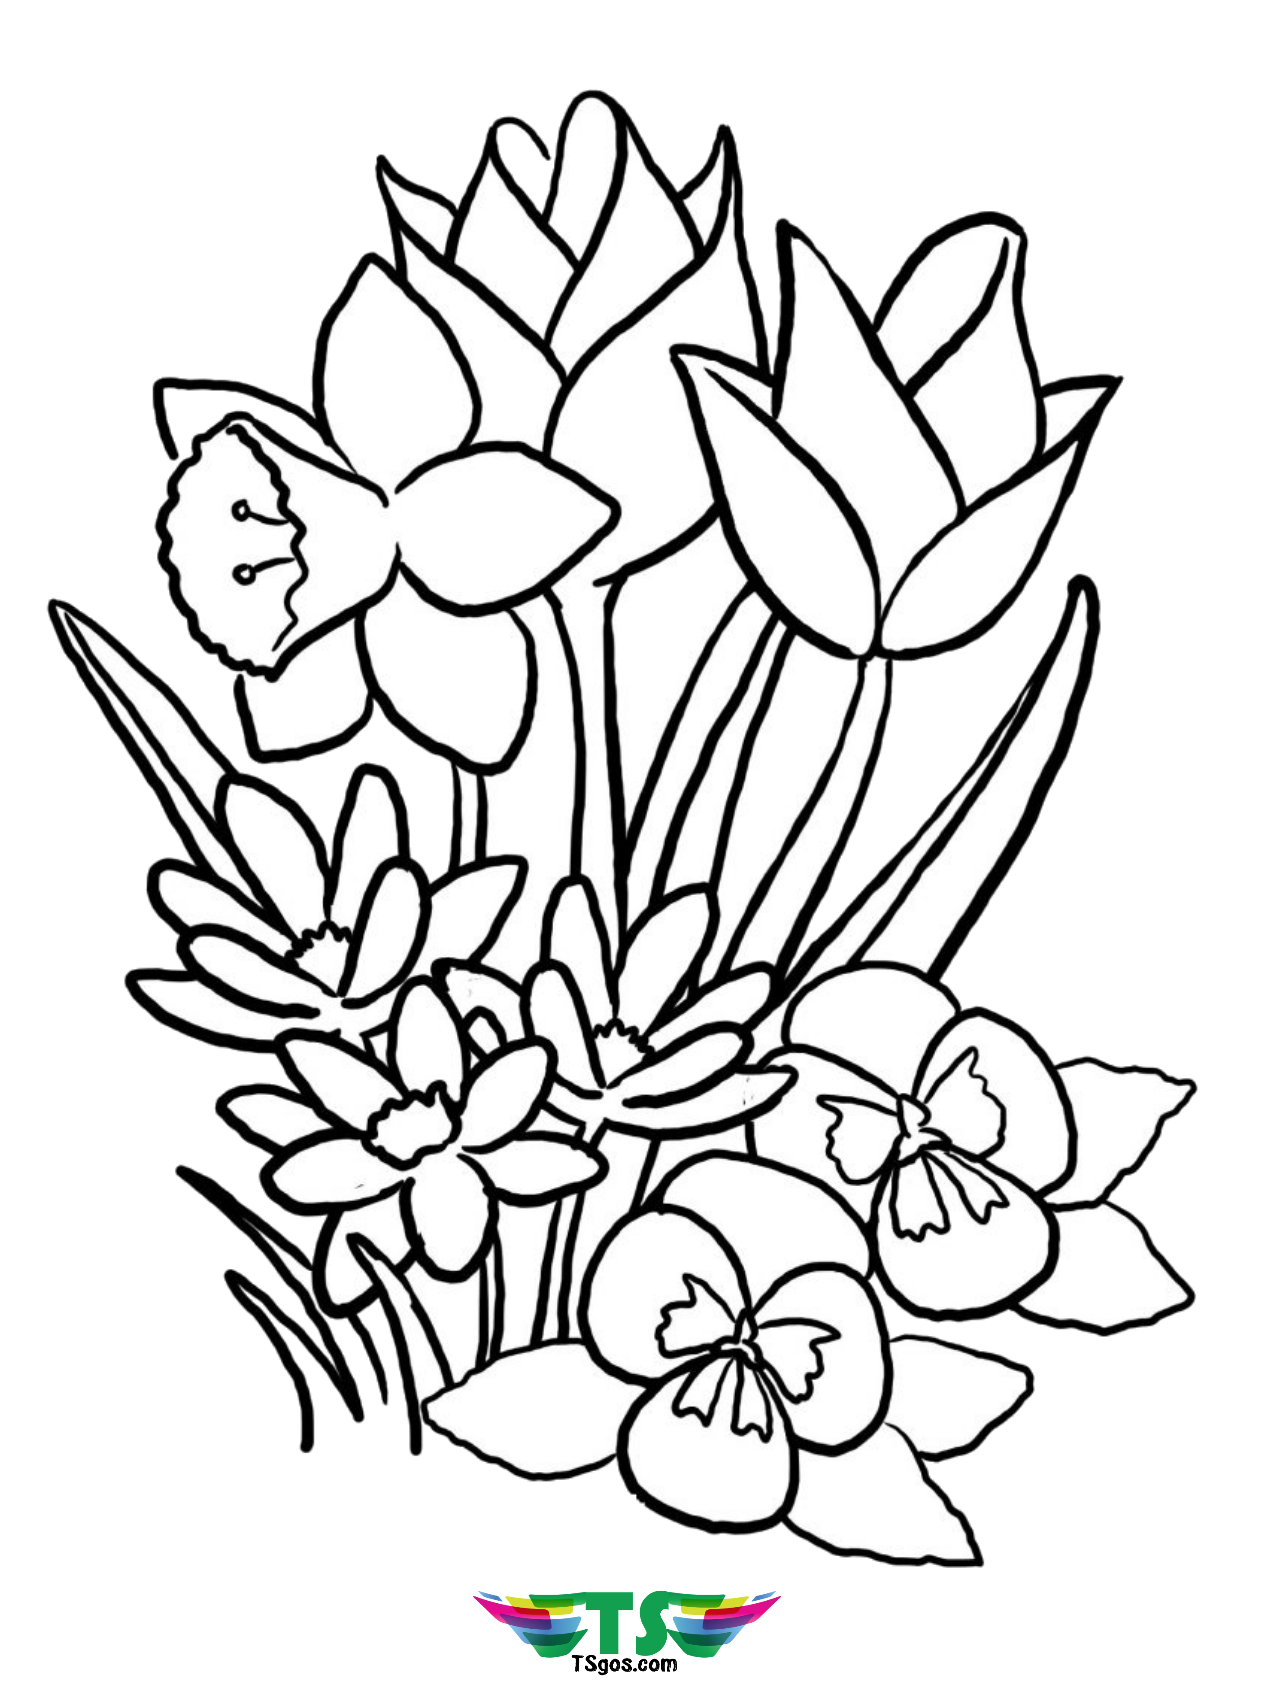 flowers coloring page bouquet of flowers coloring pages for childrens printable coloring page flowers